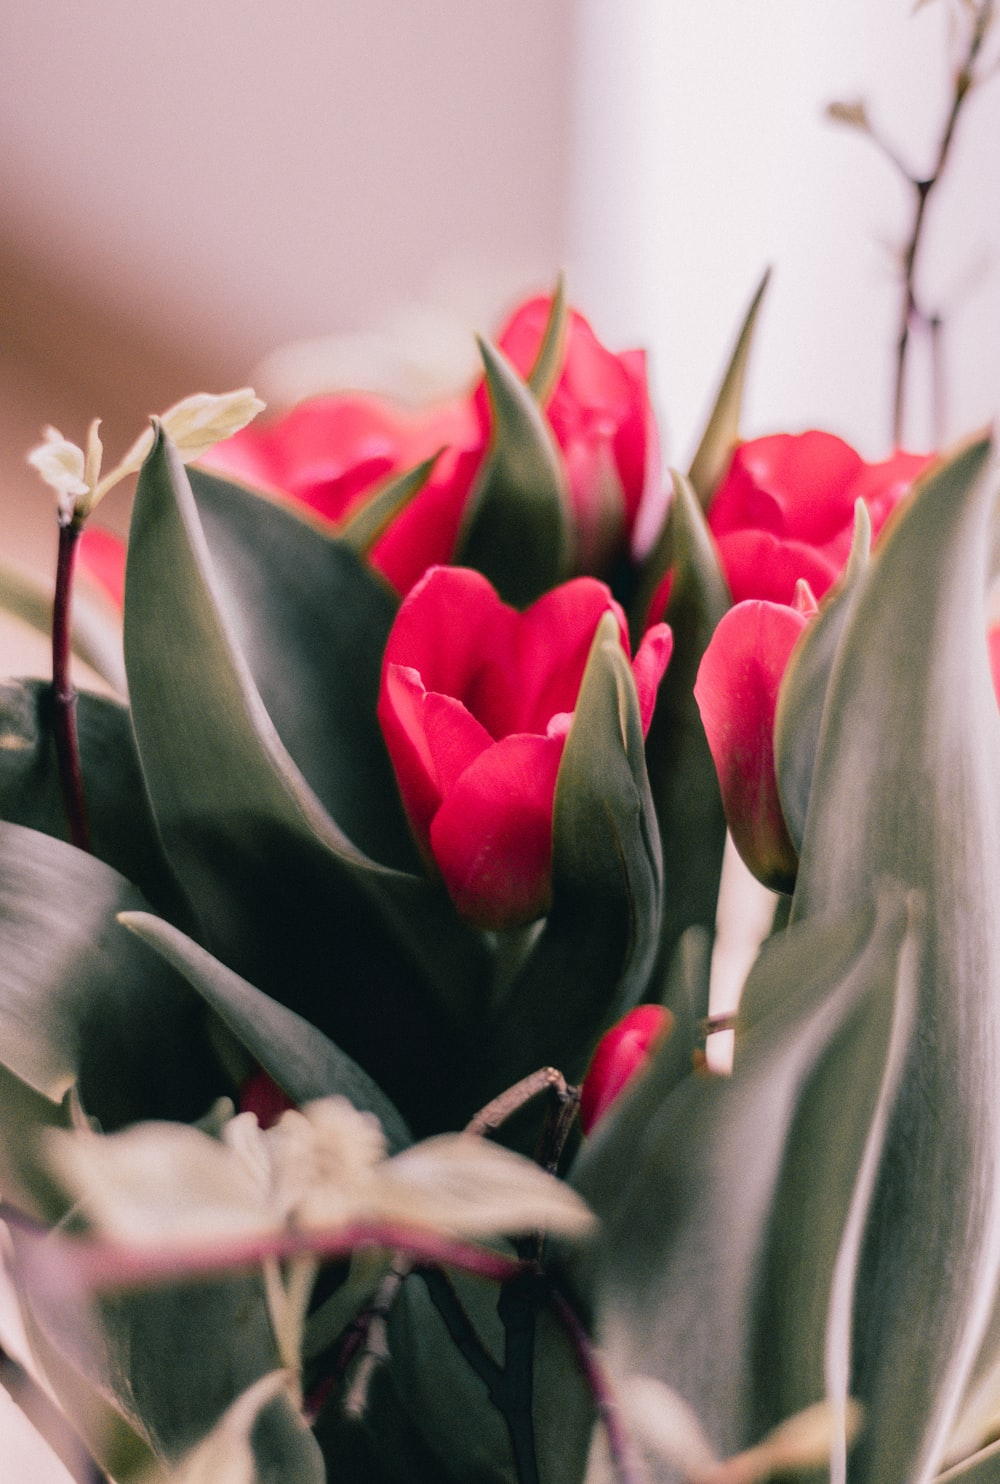 pink and white tulips in bloom